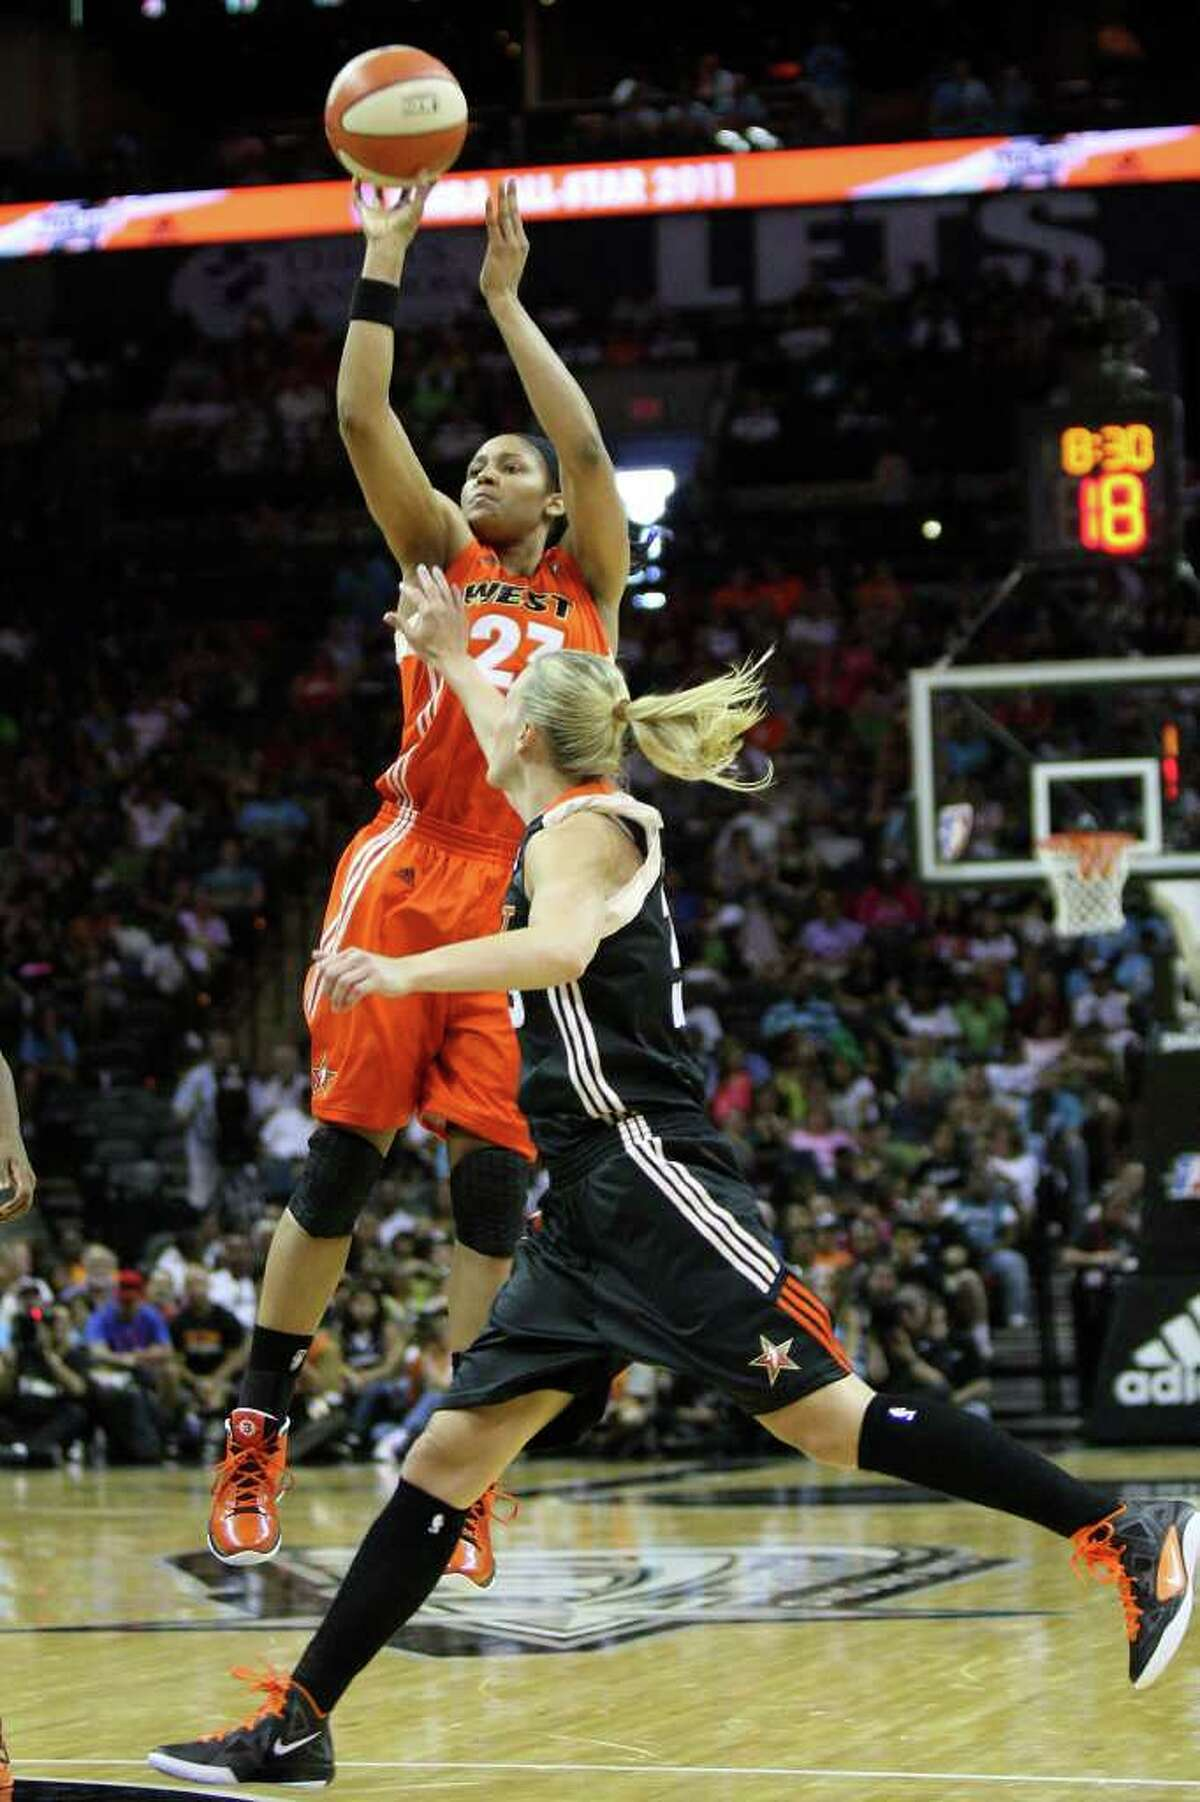 Maya Moore of the Minnesota Lynx shoots during the WNBA All-Star Game at the AT&T Center on July 23, 2011. ANDREW BUCKLEY / abuckley@express-news.net